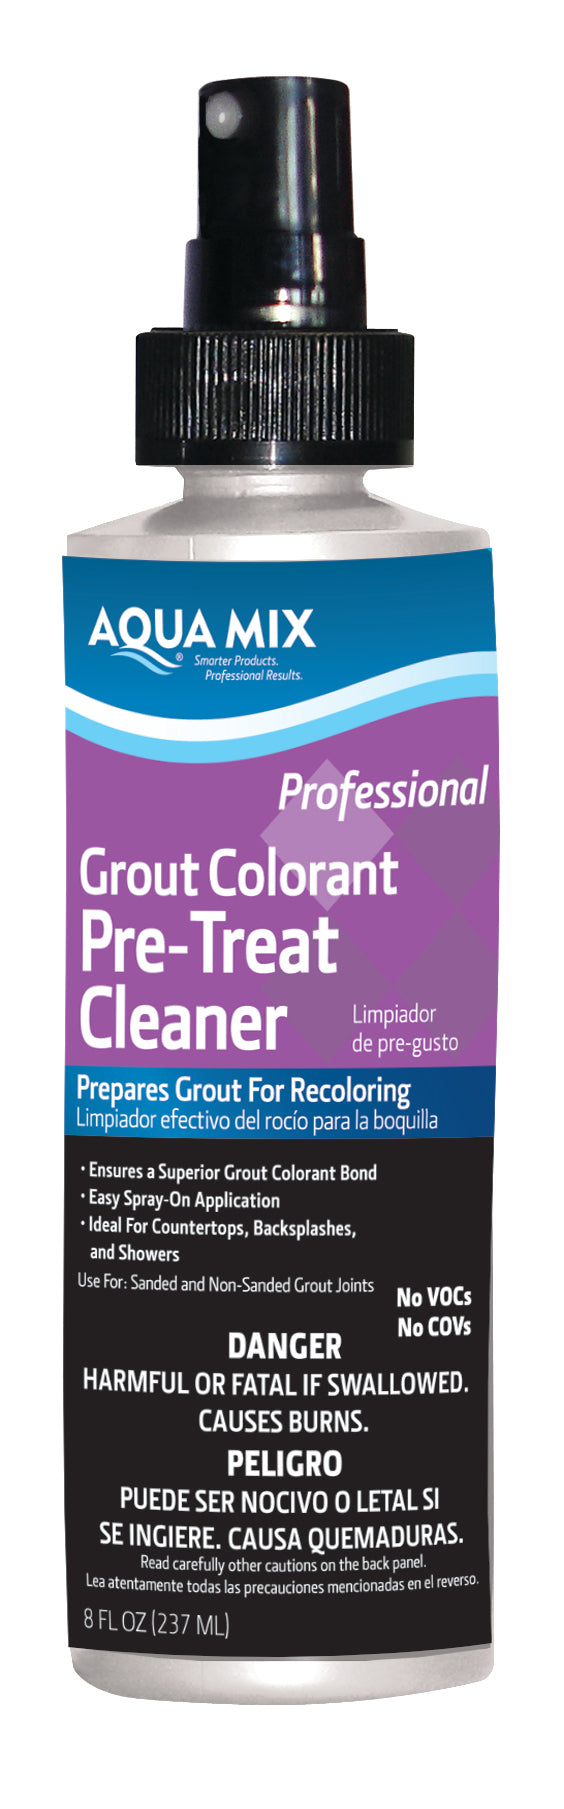 Aqua Mix Grout Colorant Pre-Treat Cleaner